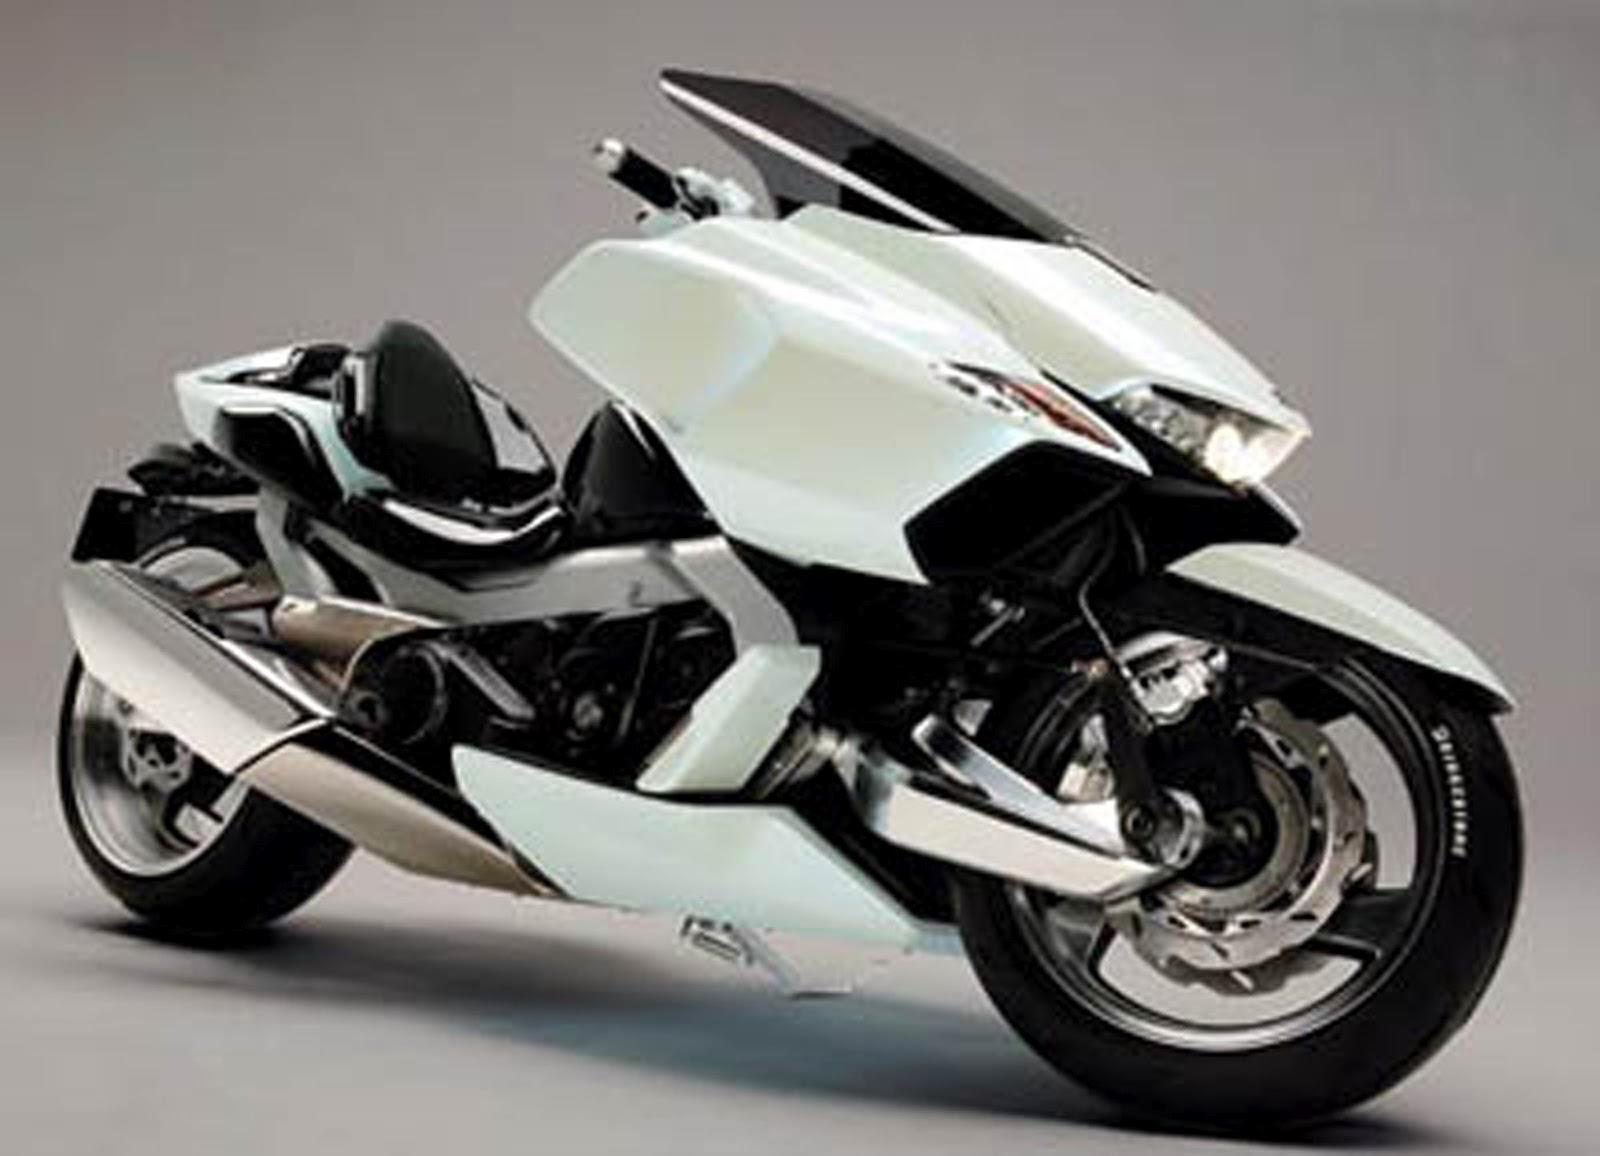 concept suzuki motorbike futuristic fi sci strider motorcycle motorcycles bike moto bikes scooter designs motorbikes hoverbike cycle plus nm4 electric